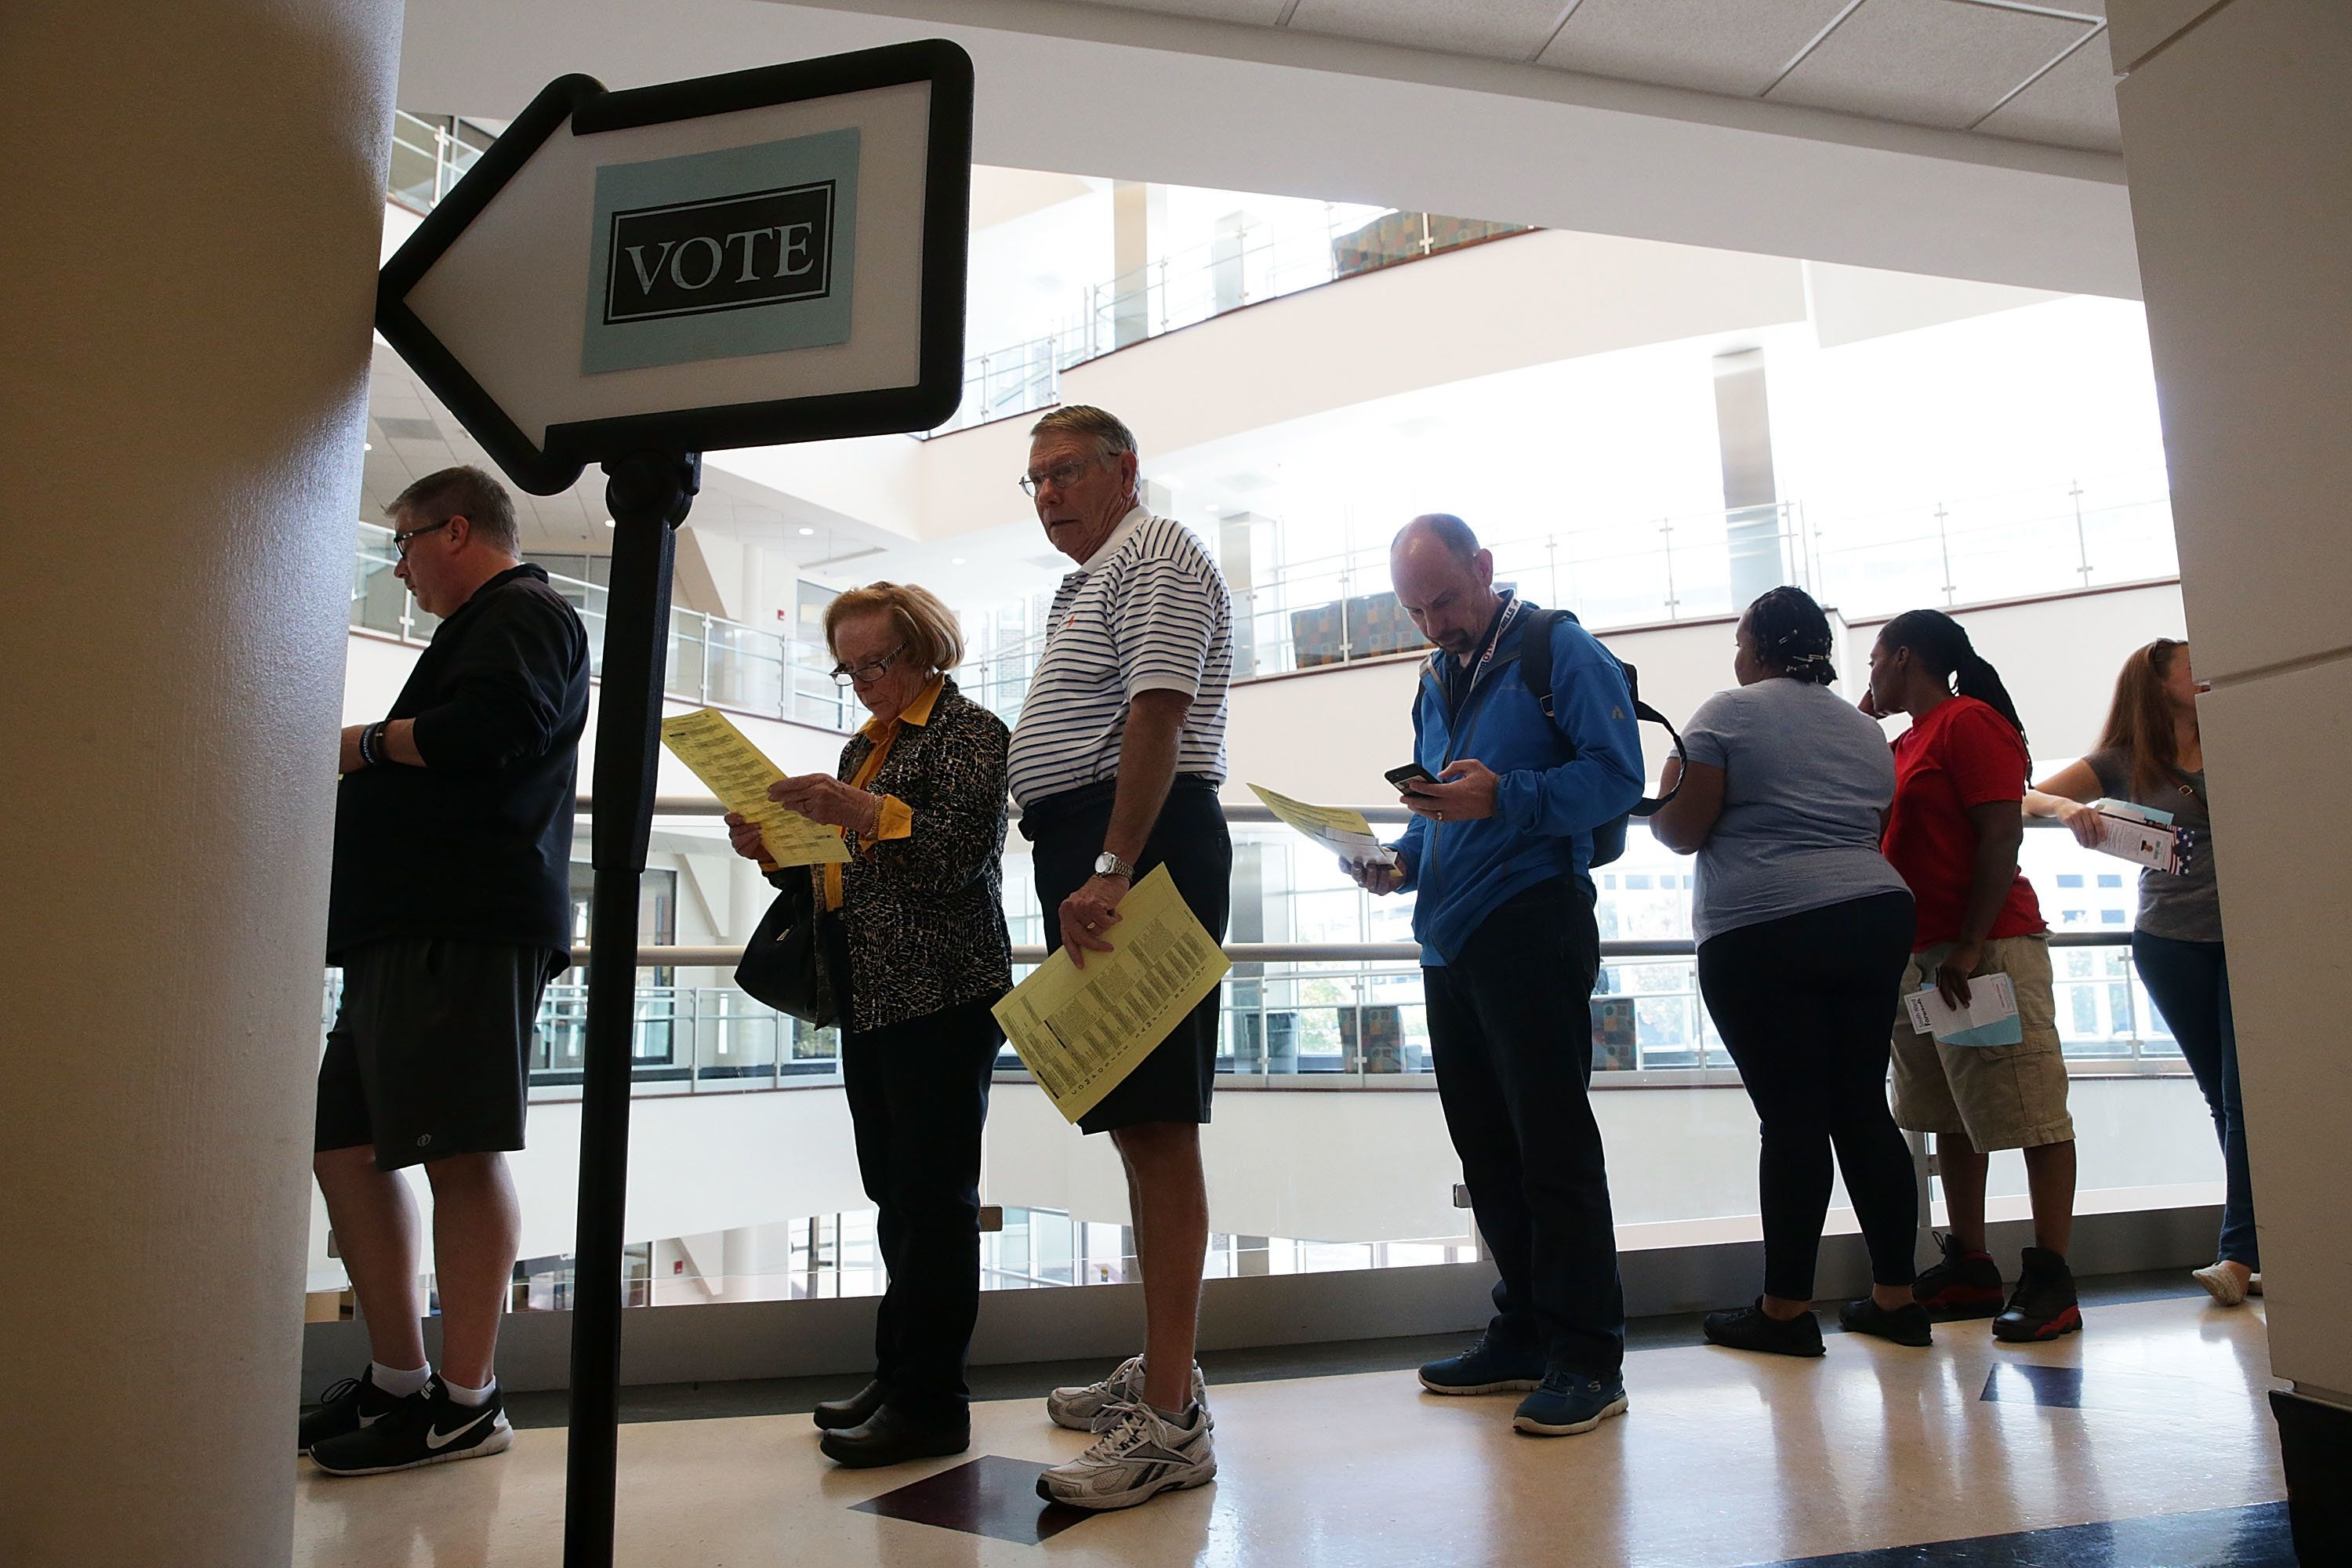 WINSTON-SALEM, NC - OCTOBER 28:  Voters wait in line for casting their ballots during early voting for the 2016 general election at Forsyth County Government Center October 28, 2016 in Winston-Salem, North Carolina. Early voting has begun in North Carolina through November 5.  (Photo by Alex Wong/Getty Images)